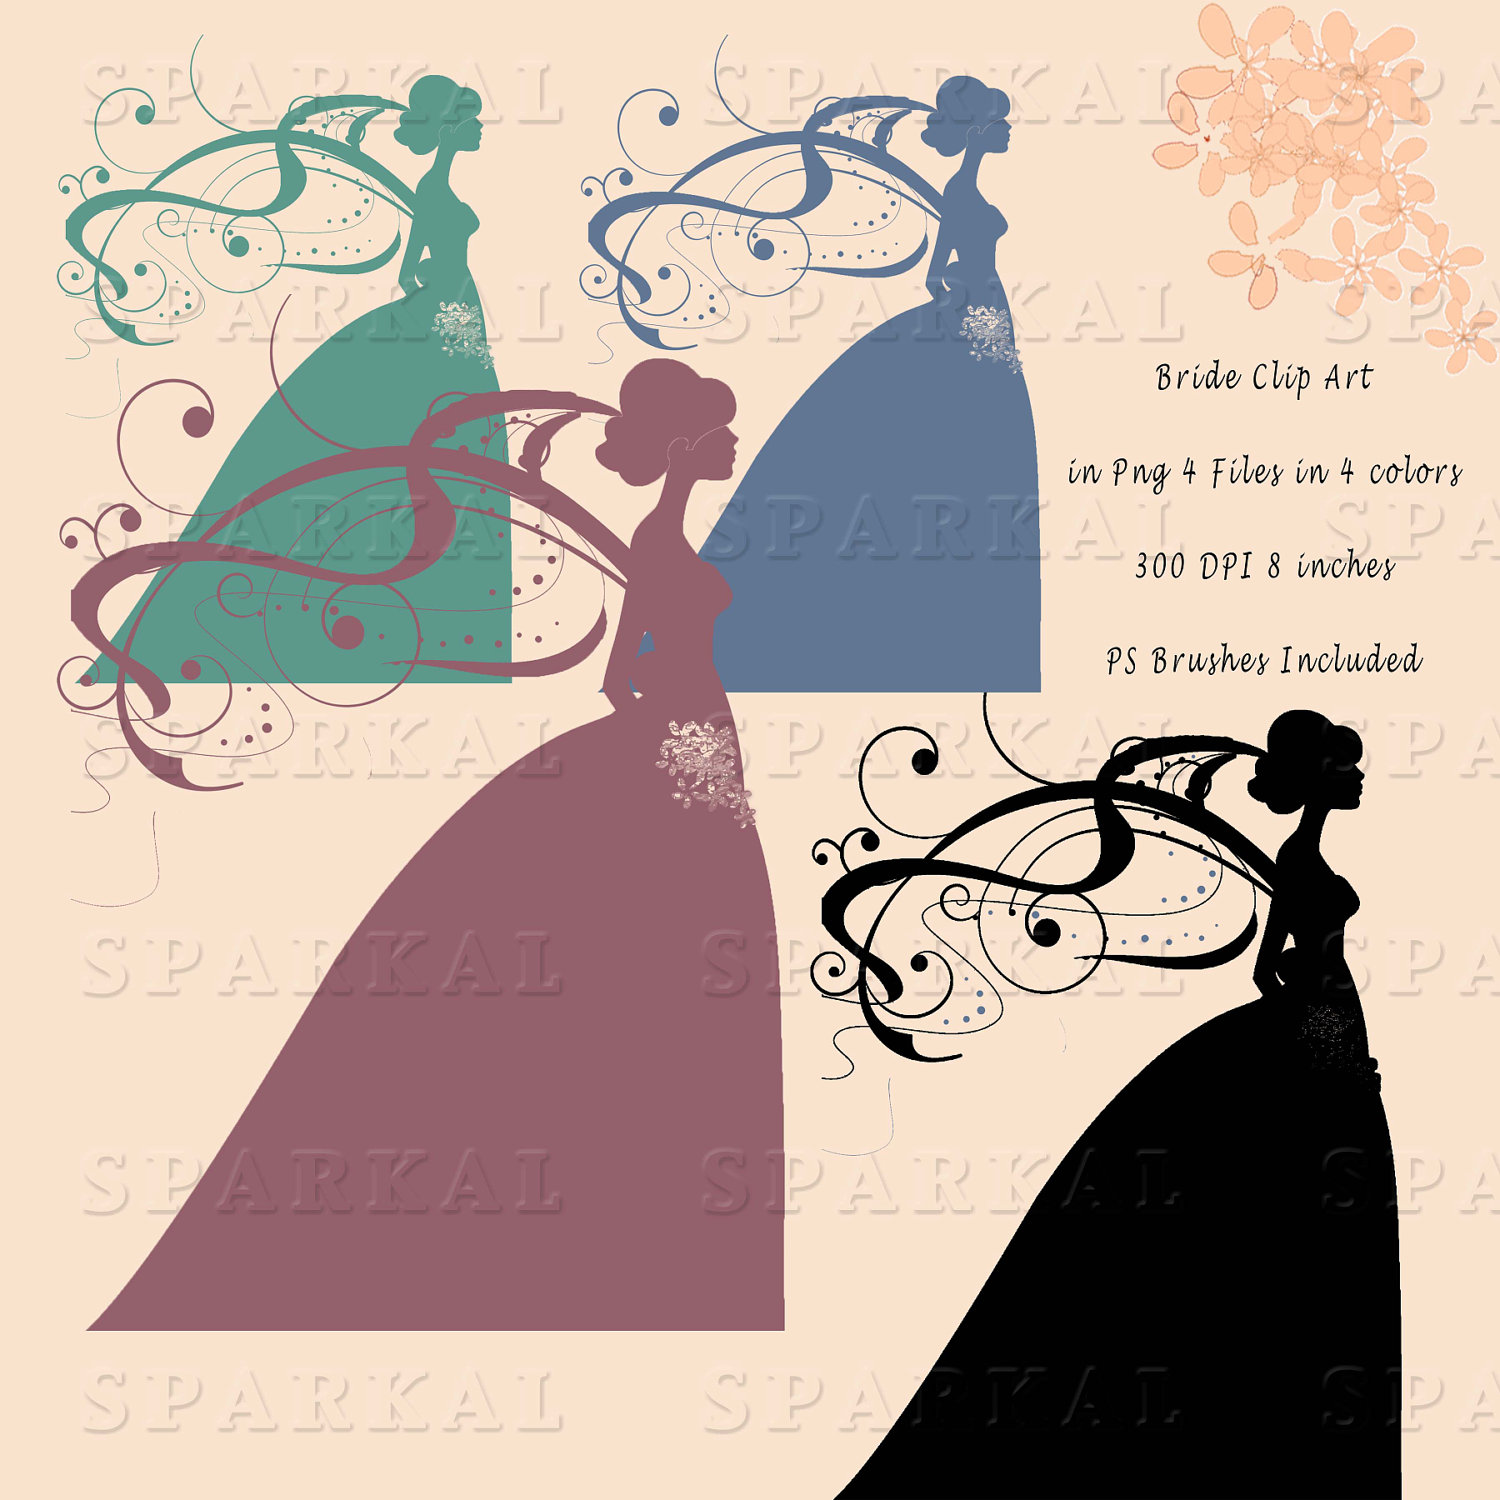 1500x1500 Digital Wedding Bride Clip Art Photoshop Brushes Included